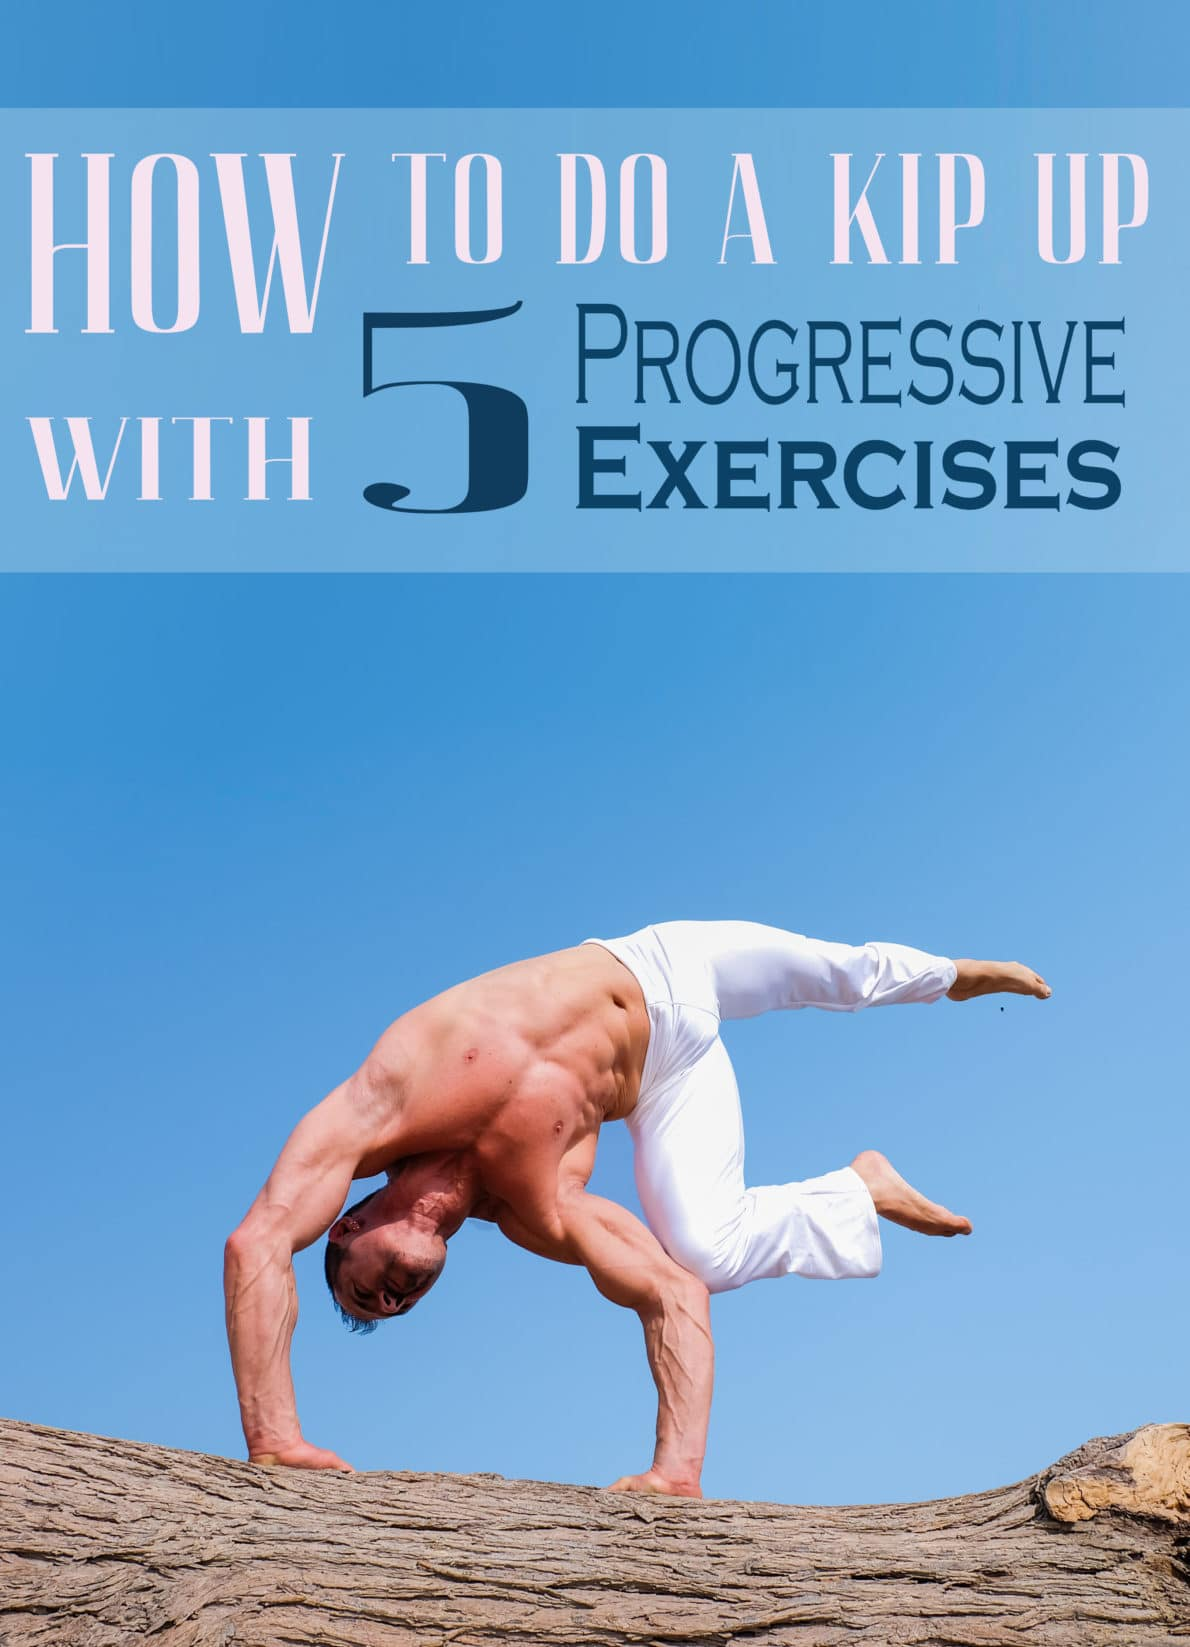 How To Do A Kip Up With 5 Progressive Exercises 2